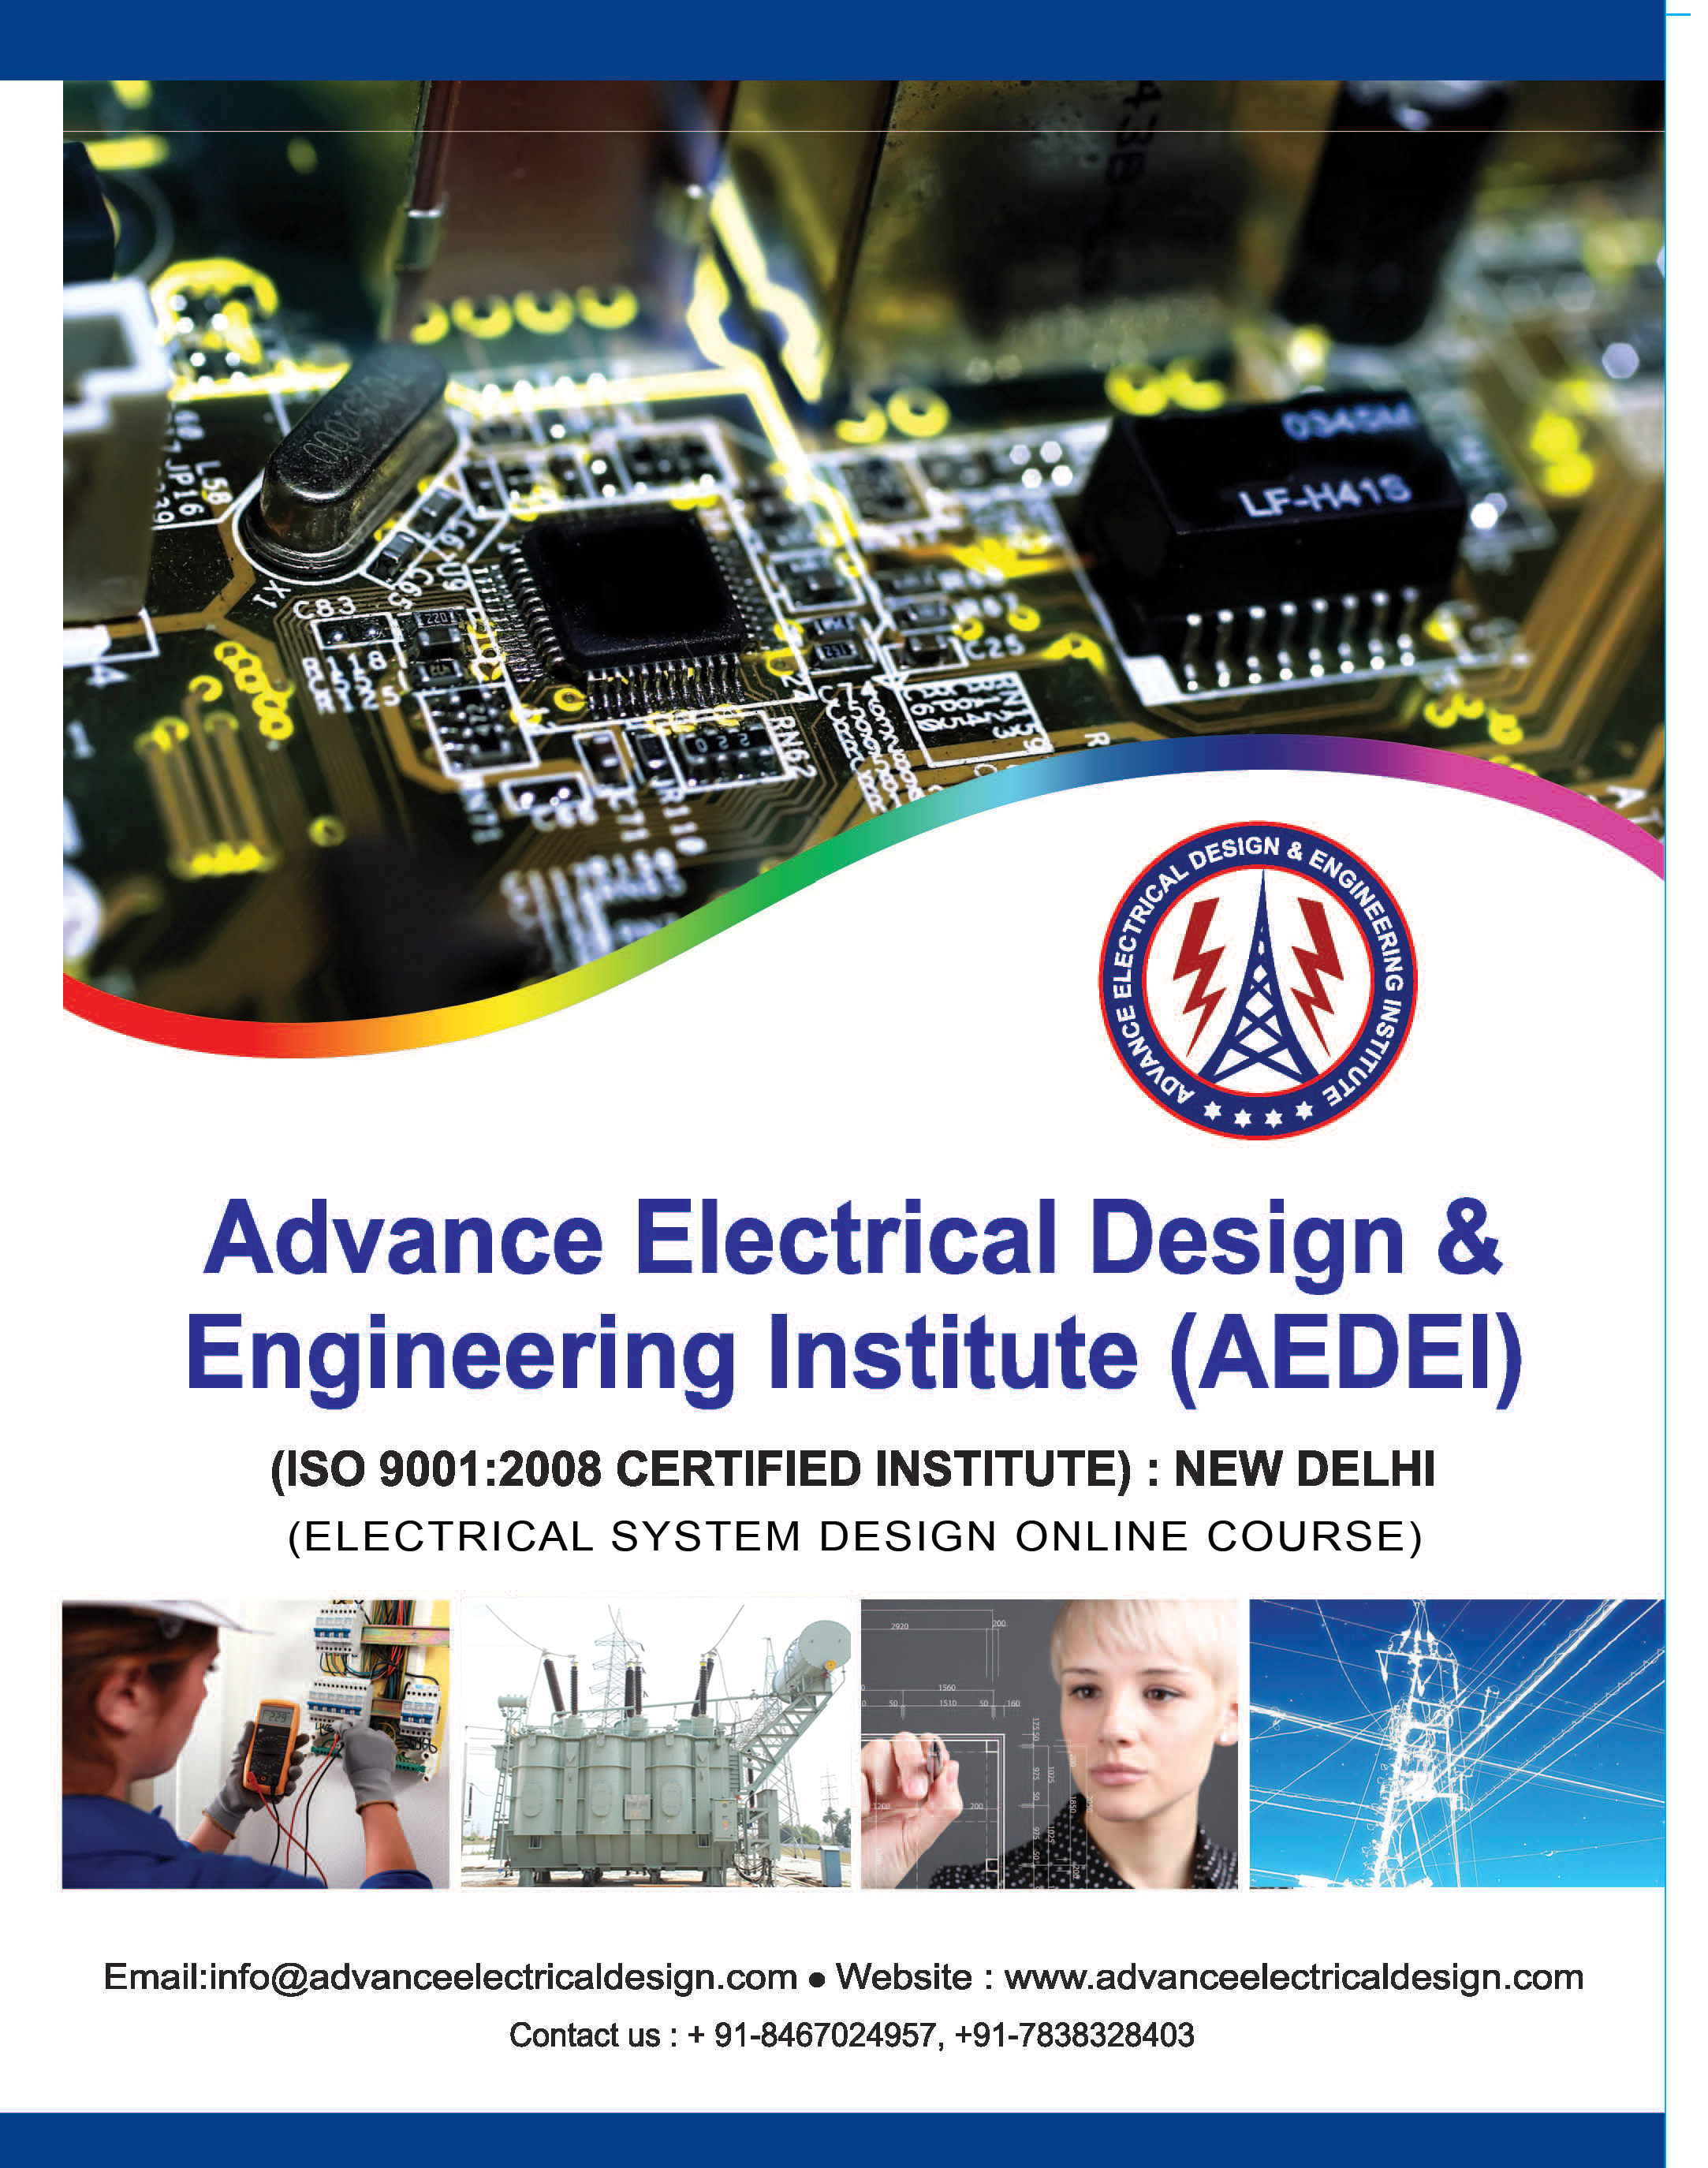 Online Electrical Design Engineering Course in delhi,Institute offer online Electrical Design course